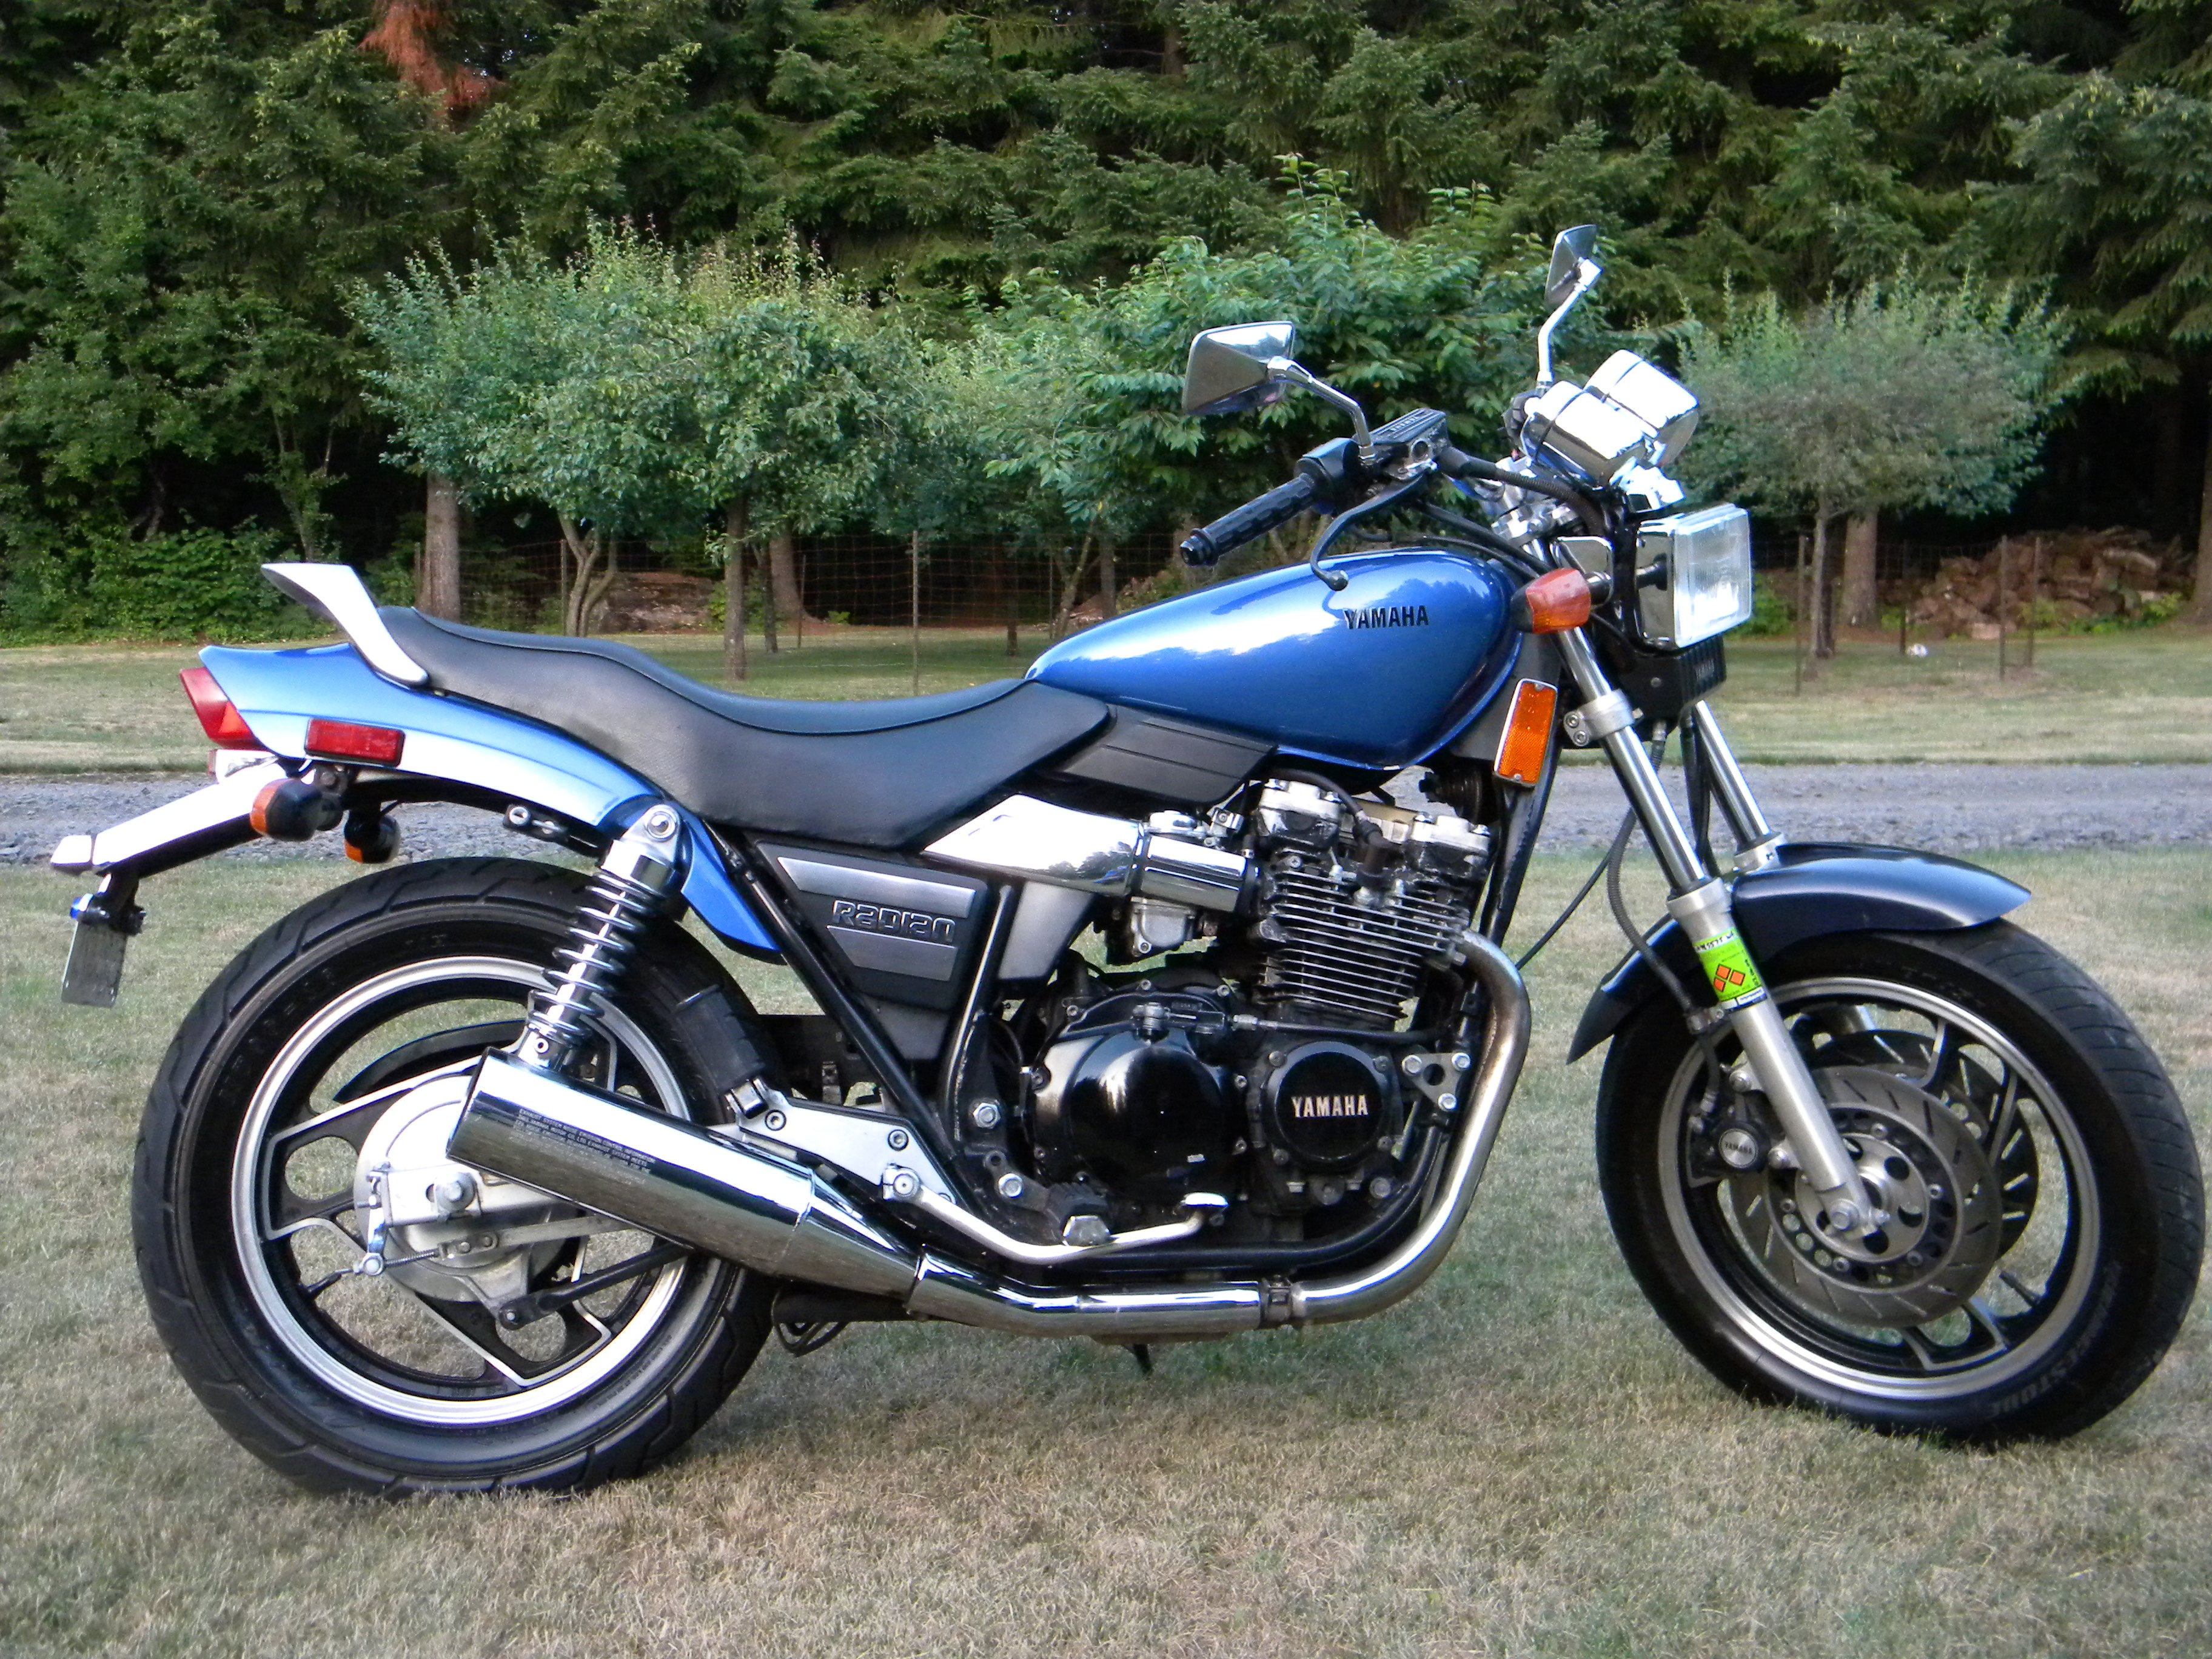 Yamaha XJ 600 (reduced effect) 1987 #8